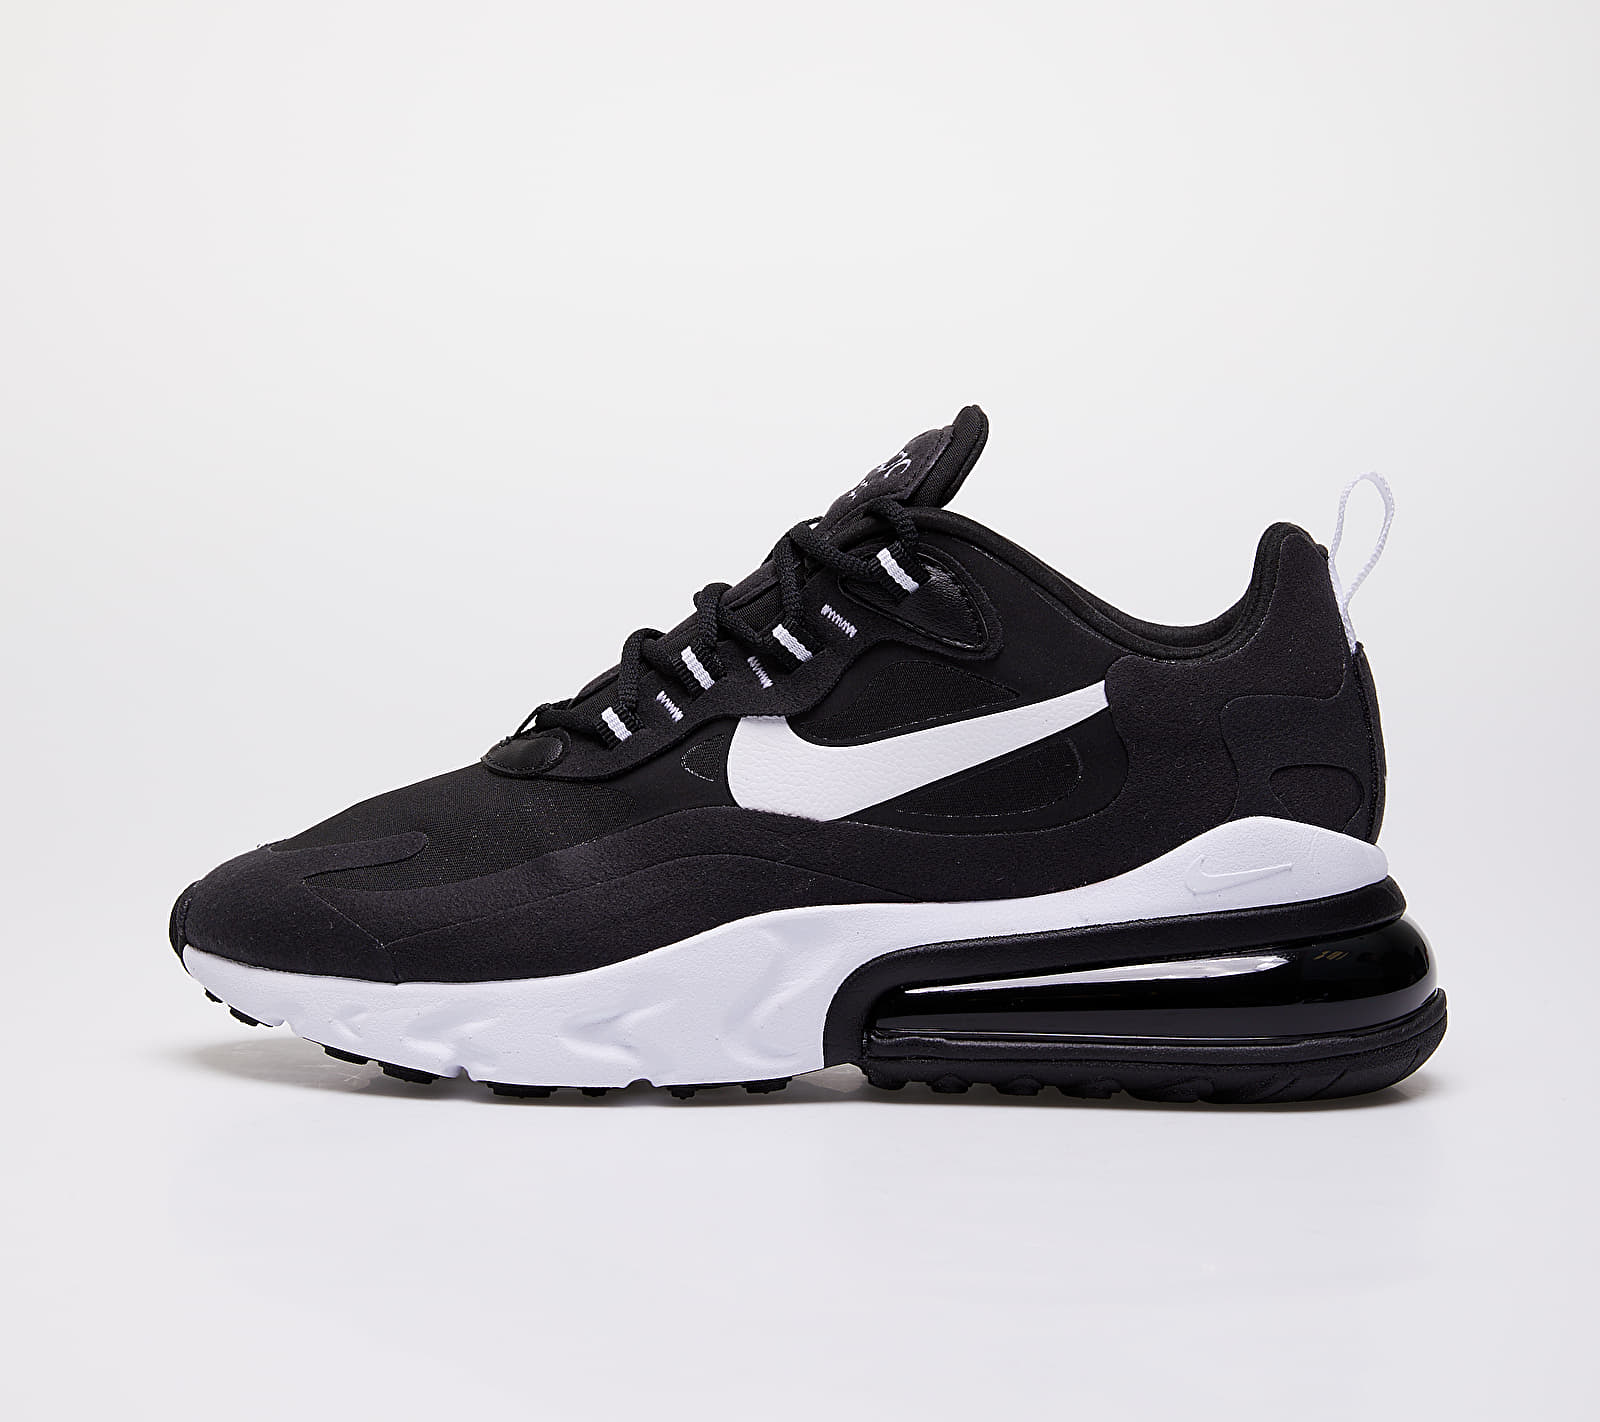 Nike W Air Max 270 React Black/ White-Black-Black EUR 40.5